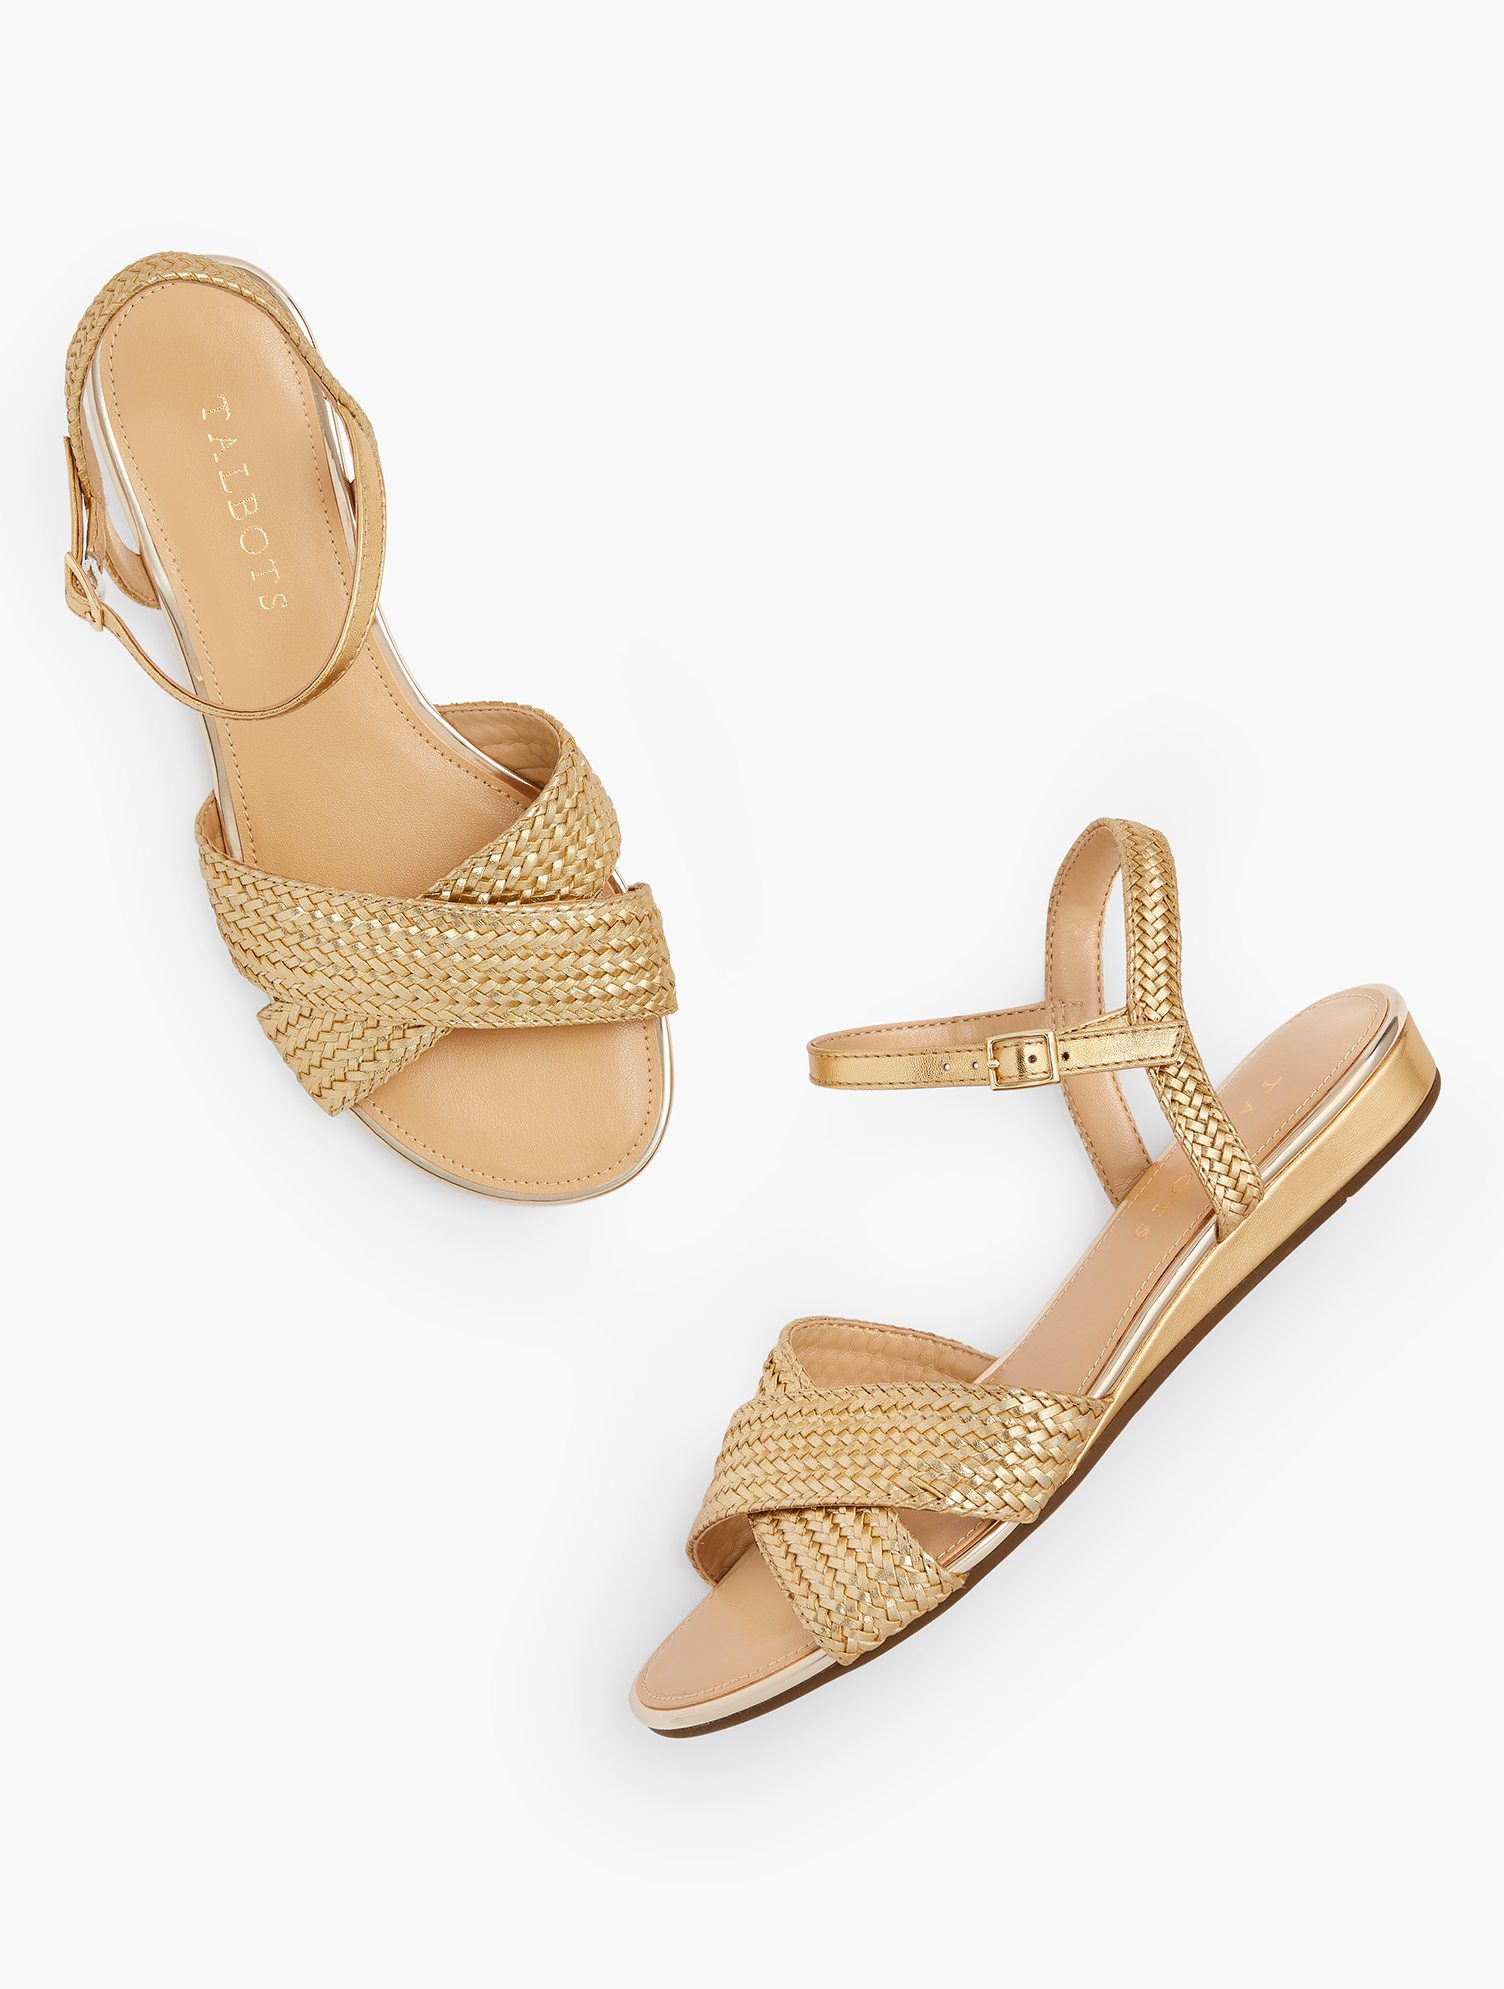 The Daisy. Our modern micro-wedge gives you just the lift you need. Classic and comfortable. In rich gold. Features Gift Box/Gift Wrap is not available for this item 3/4 inches Heel Round toe 3MM Memory foam footbed Gold hardware Imported Material: 100% Polyurethane Daisy Micro Wedge Sandals - Metallic - Rich Gold - 11M Talbots